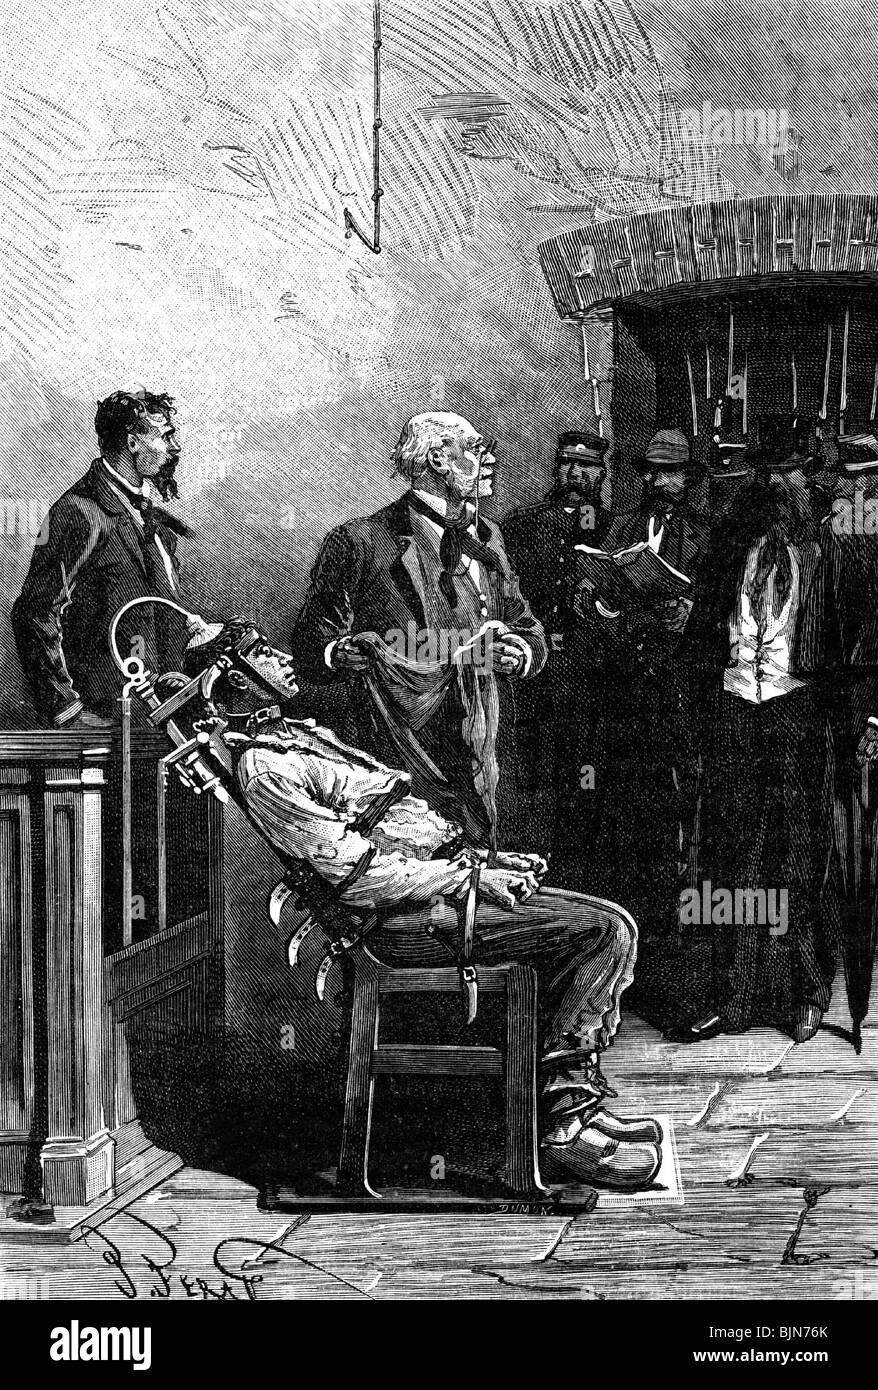 First electric chair victim - Justice Penitentiary System Electric Chair Execution France Wood Engraving Late